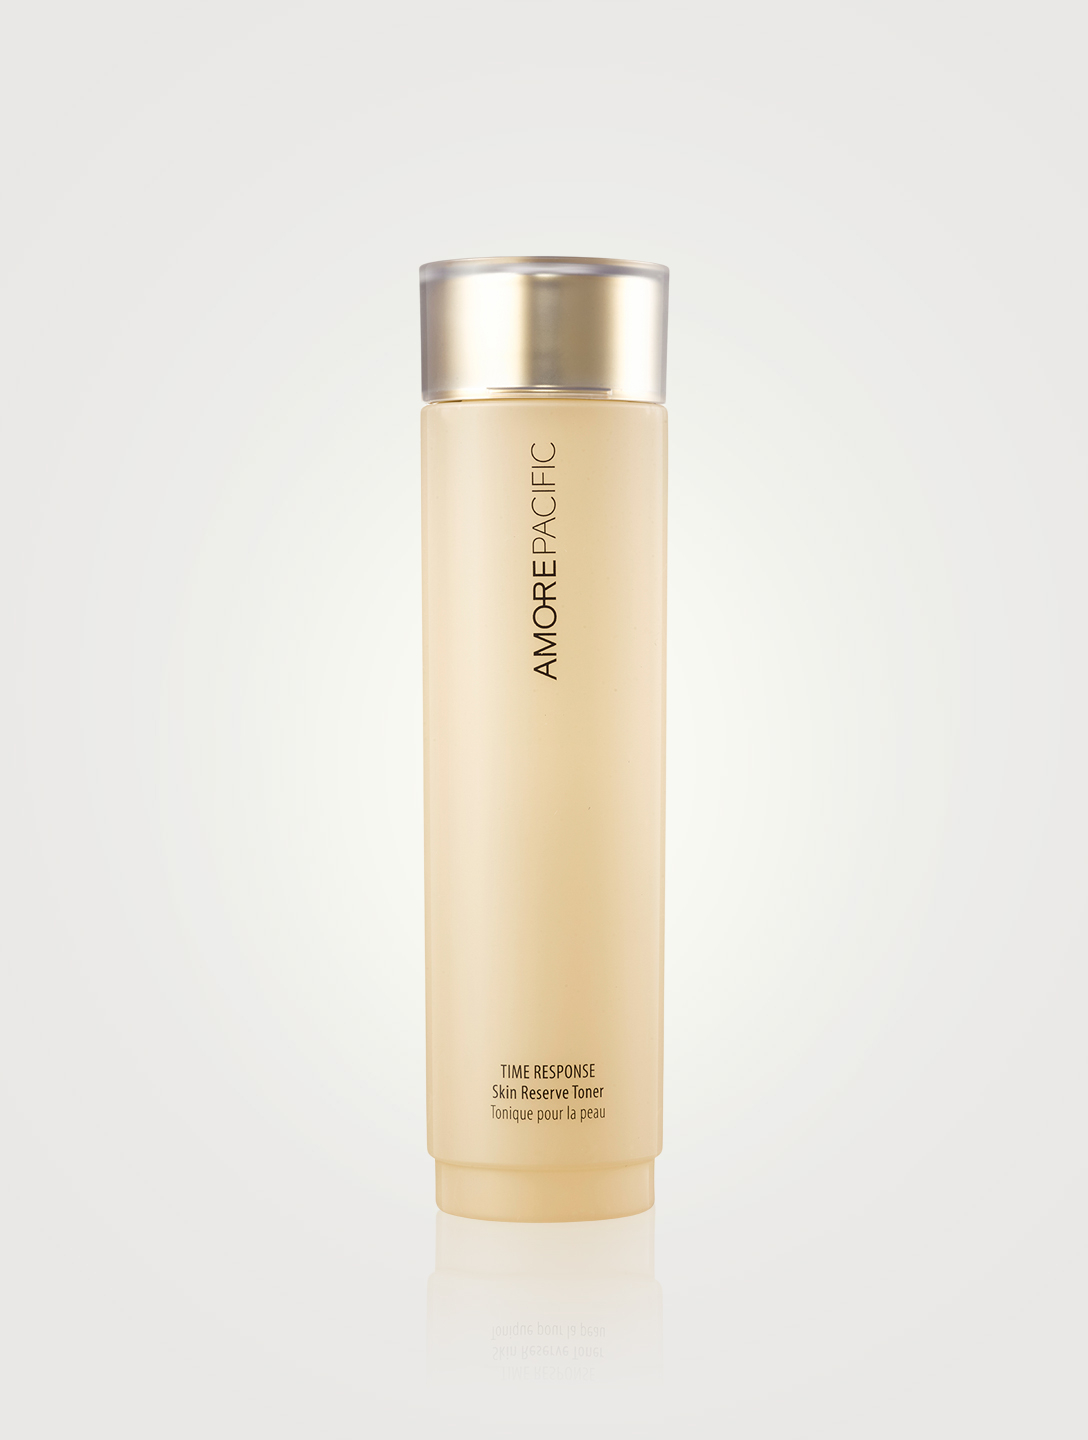 AMOREPACIFIC Time Response Skin Reserve Toner Beauty